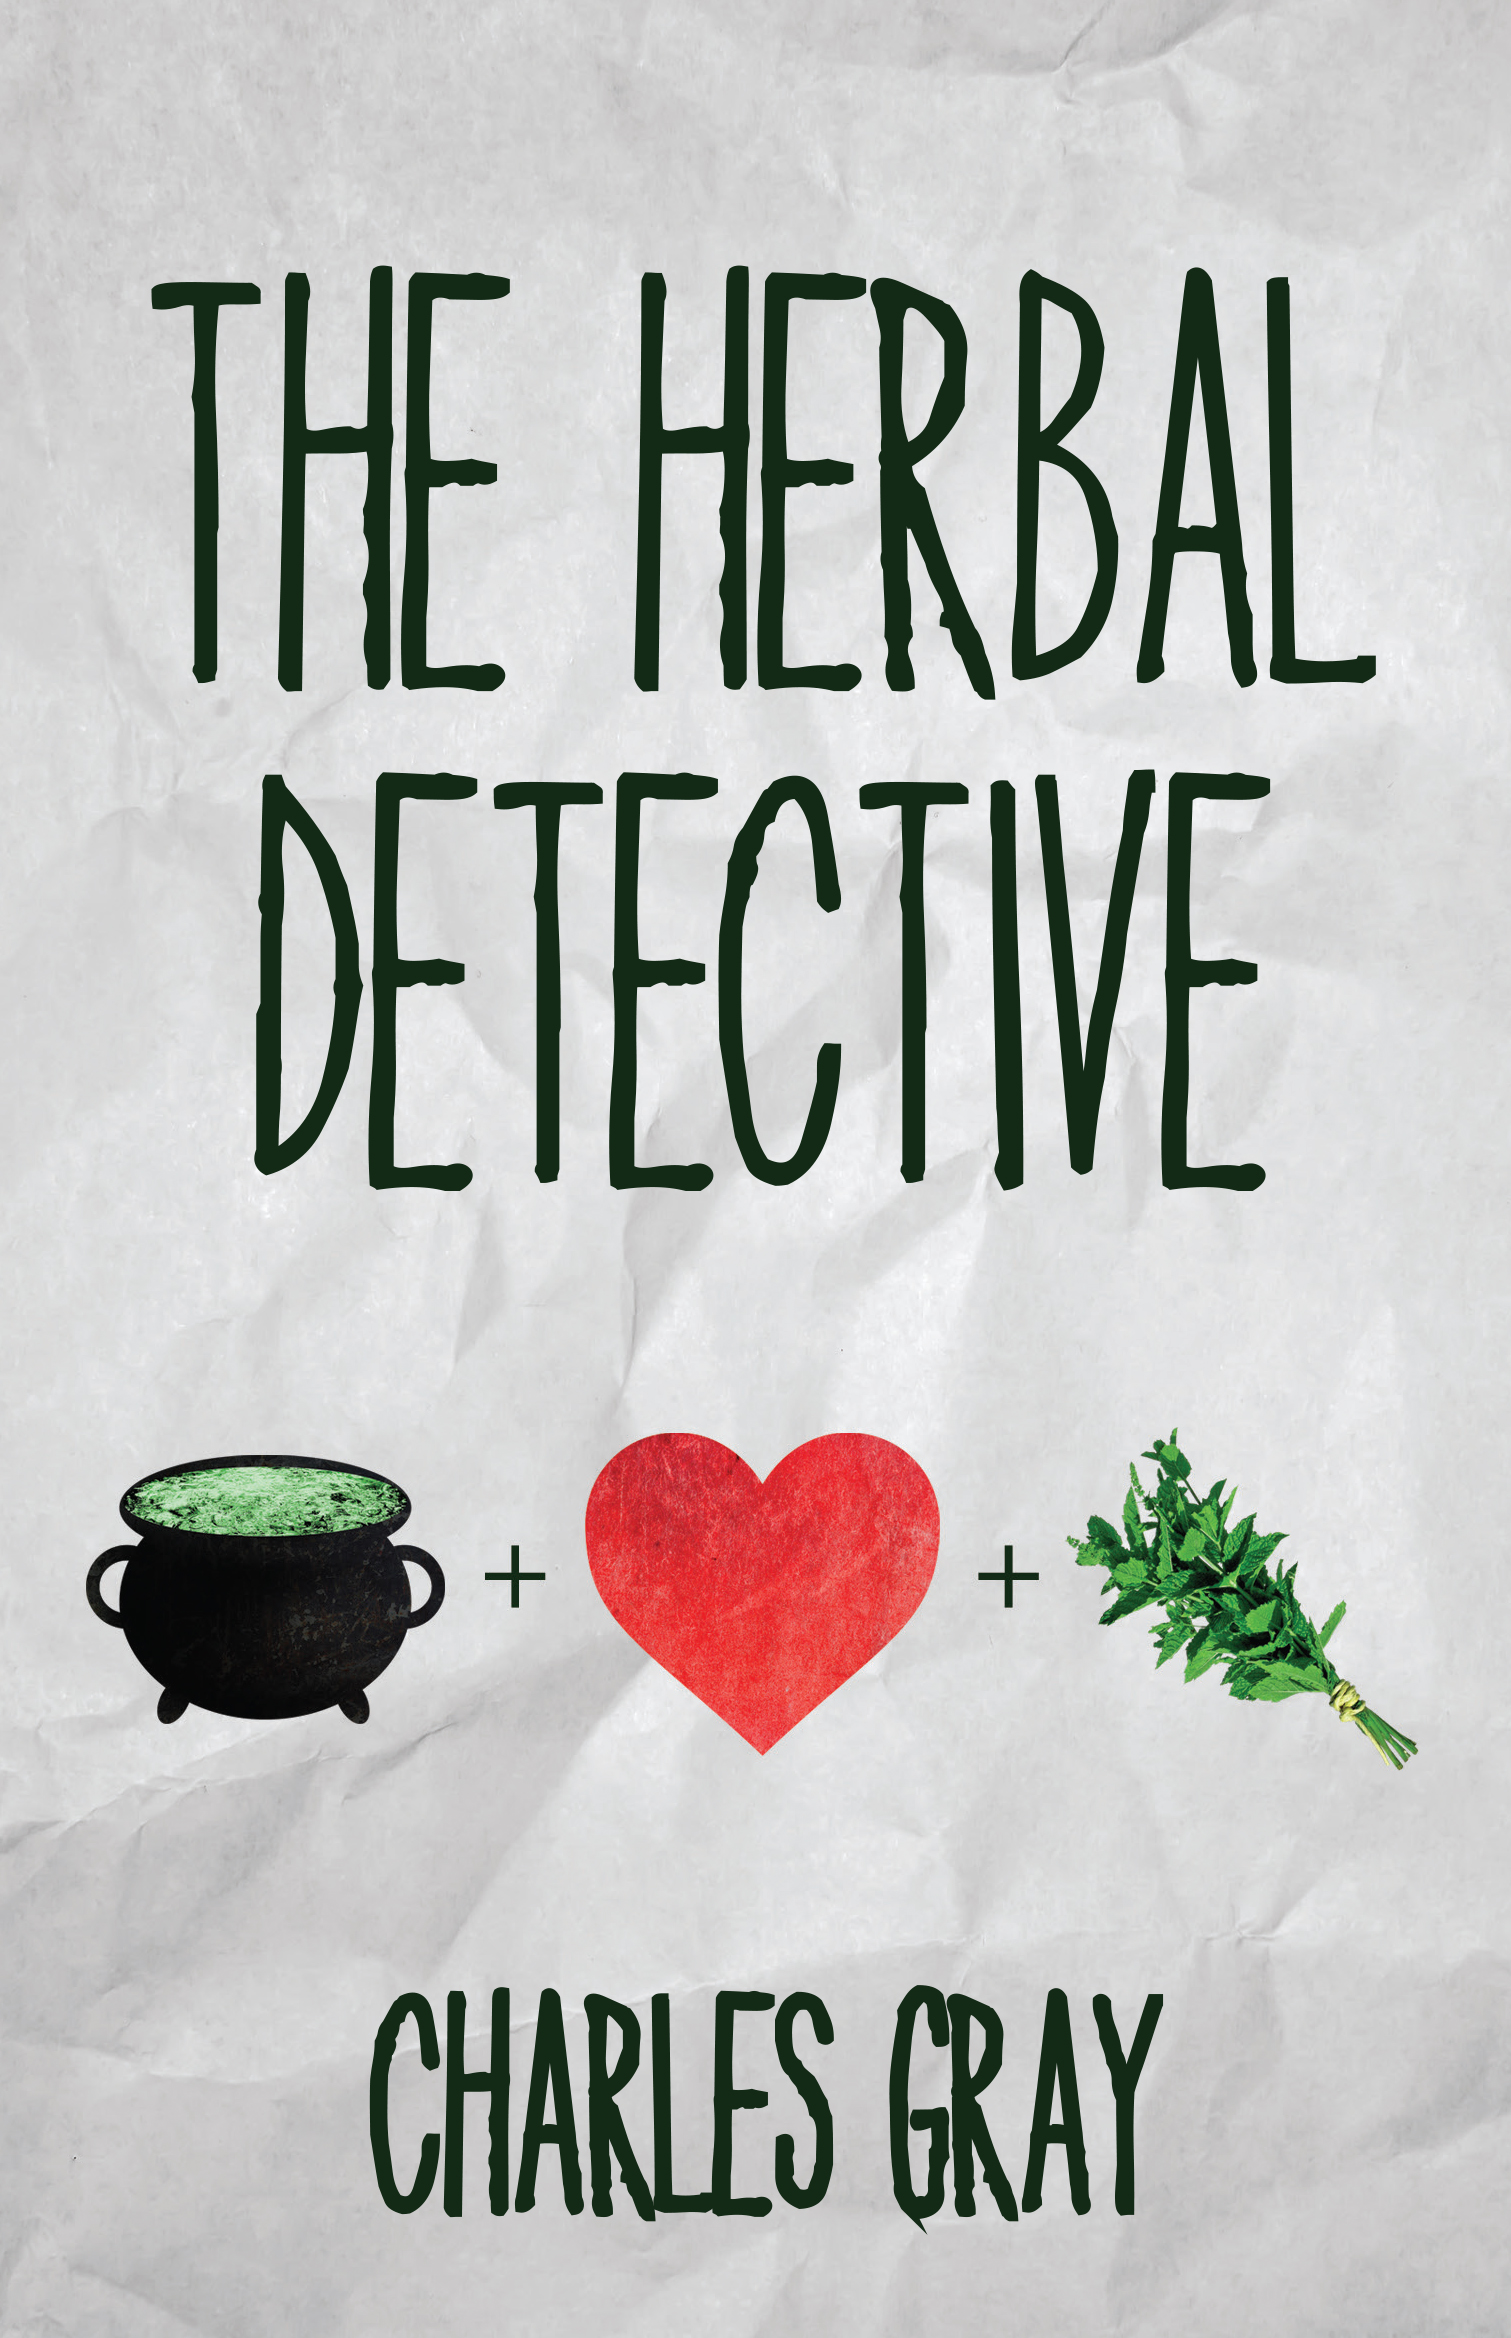 the herbal detective COVER.jpg